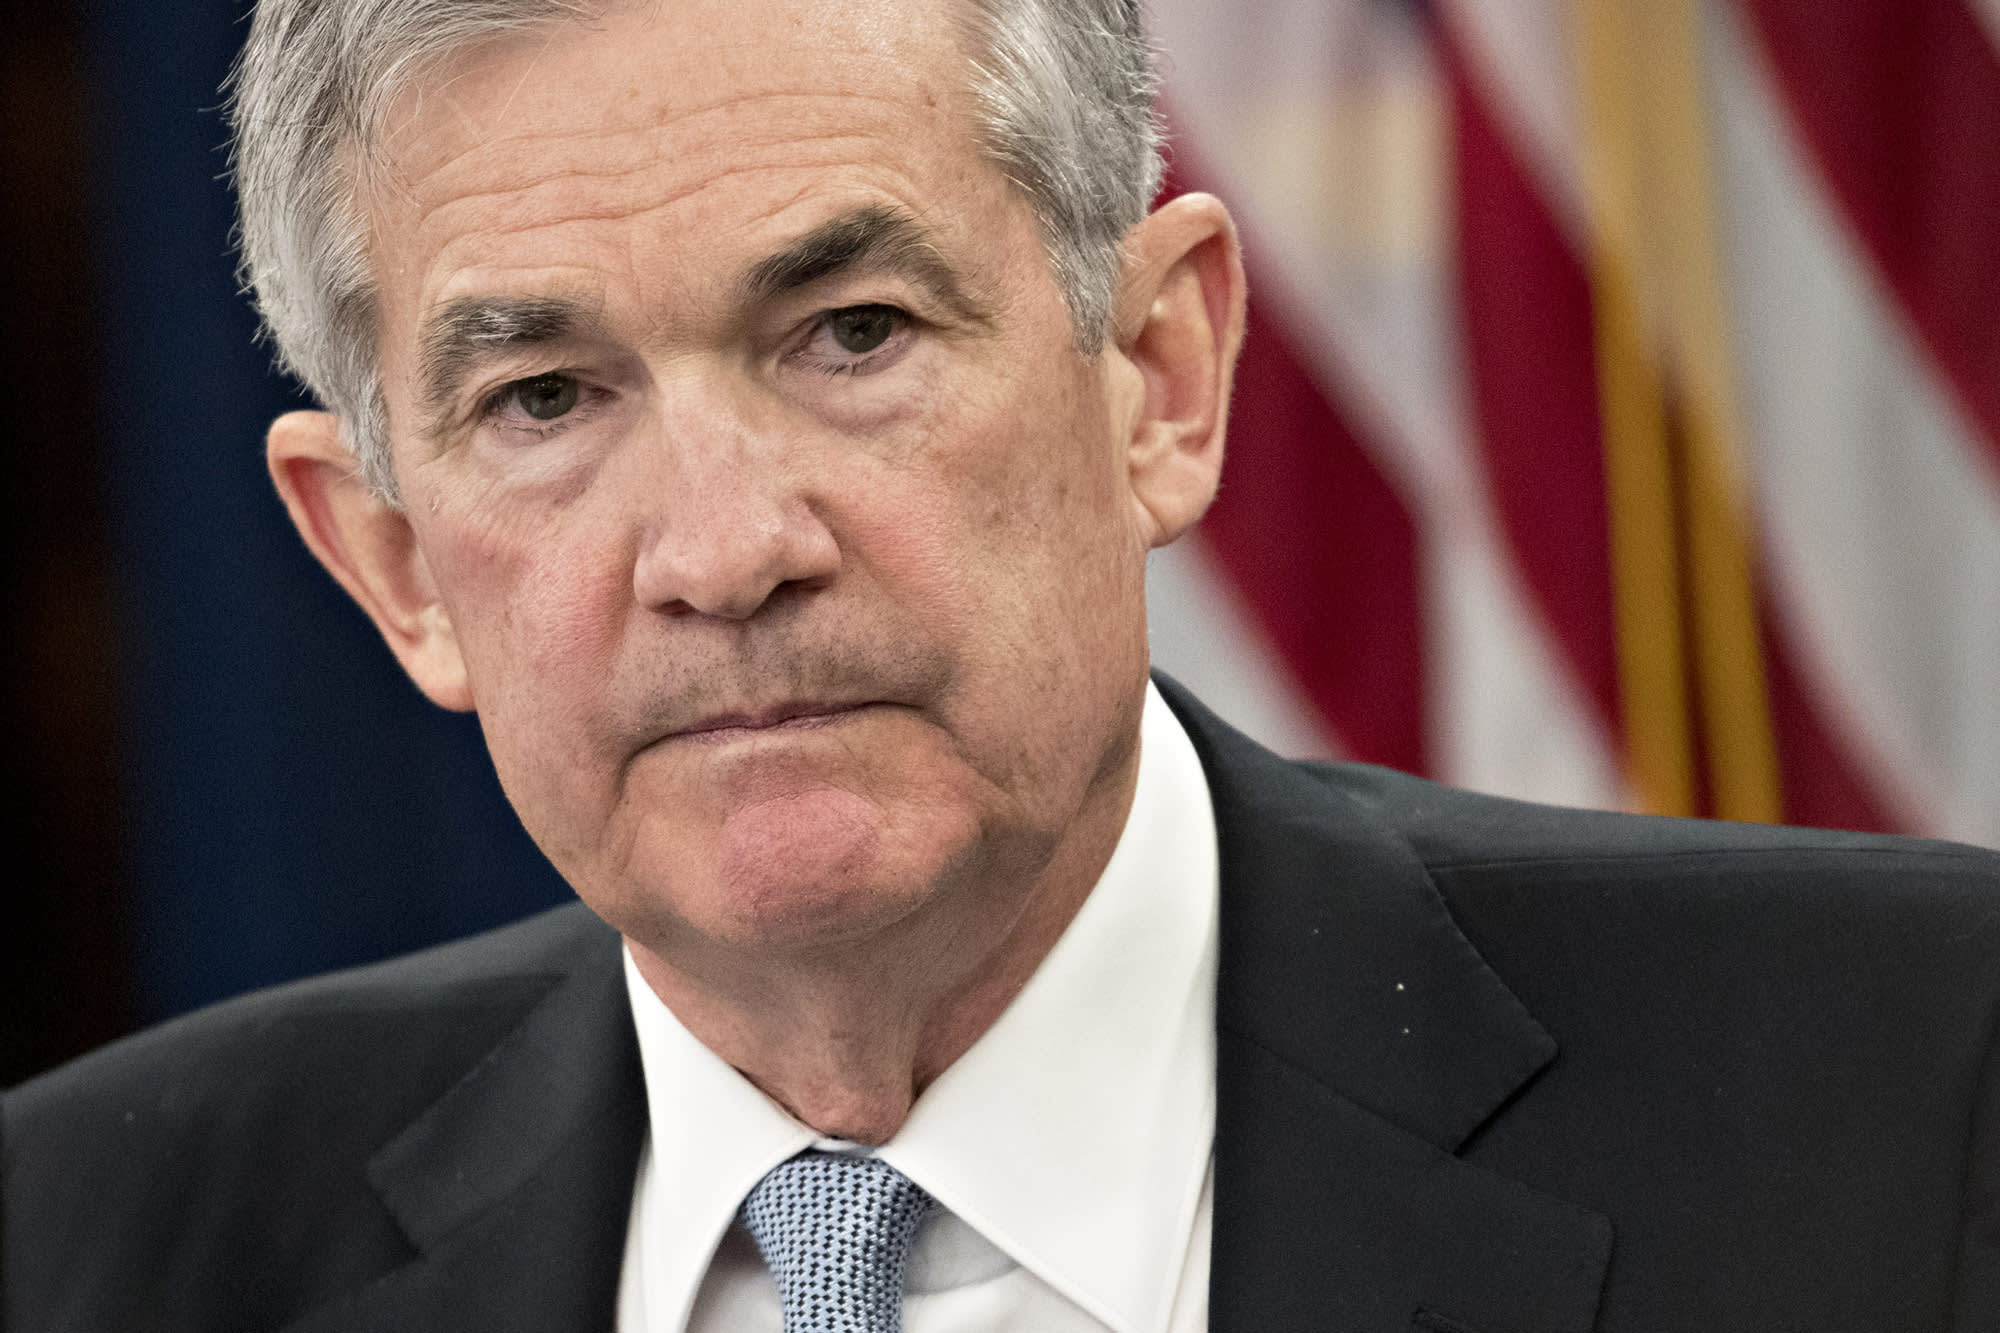 Fed not moving off sidelines unless inflation heats up and stays there, Powell emphasizes